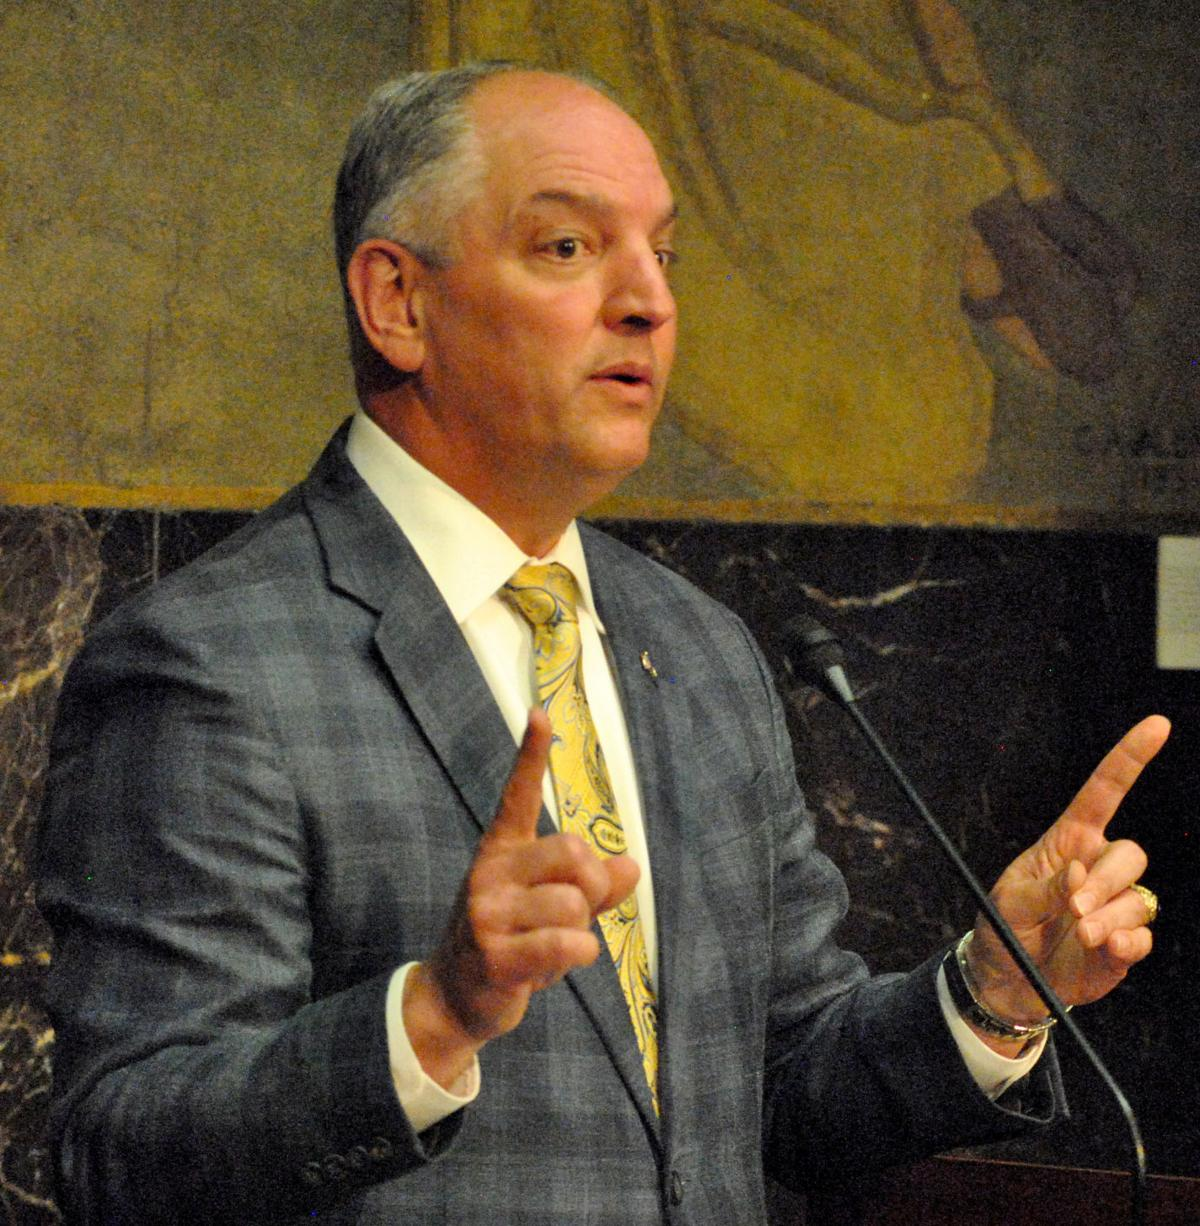 Gov. John Bel Edwards